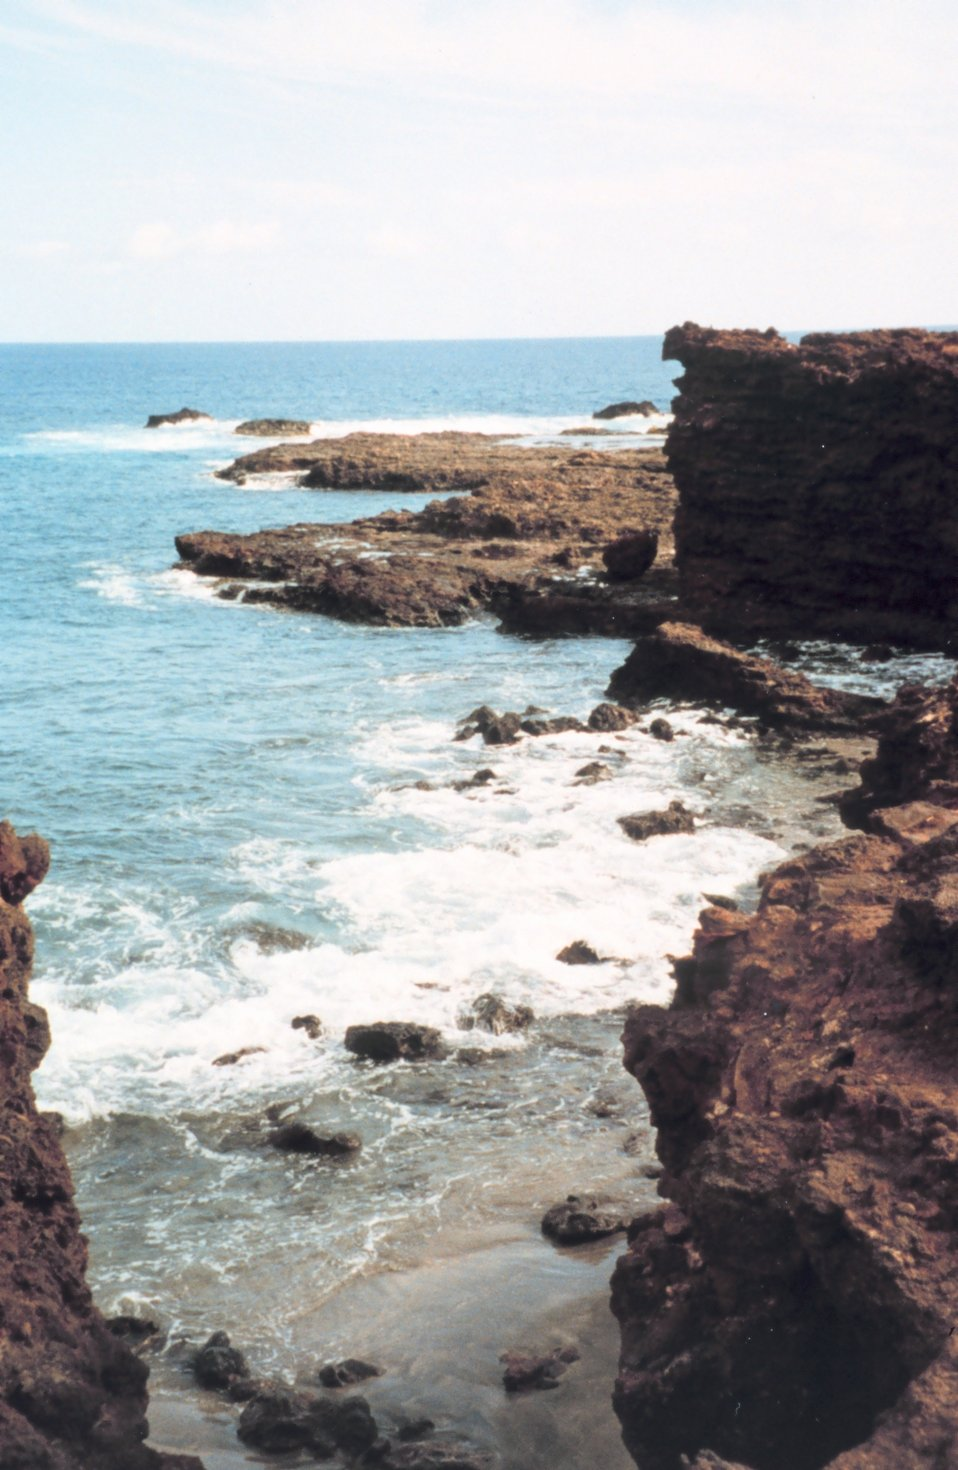 Sharp hard rocky shoreline